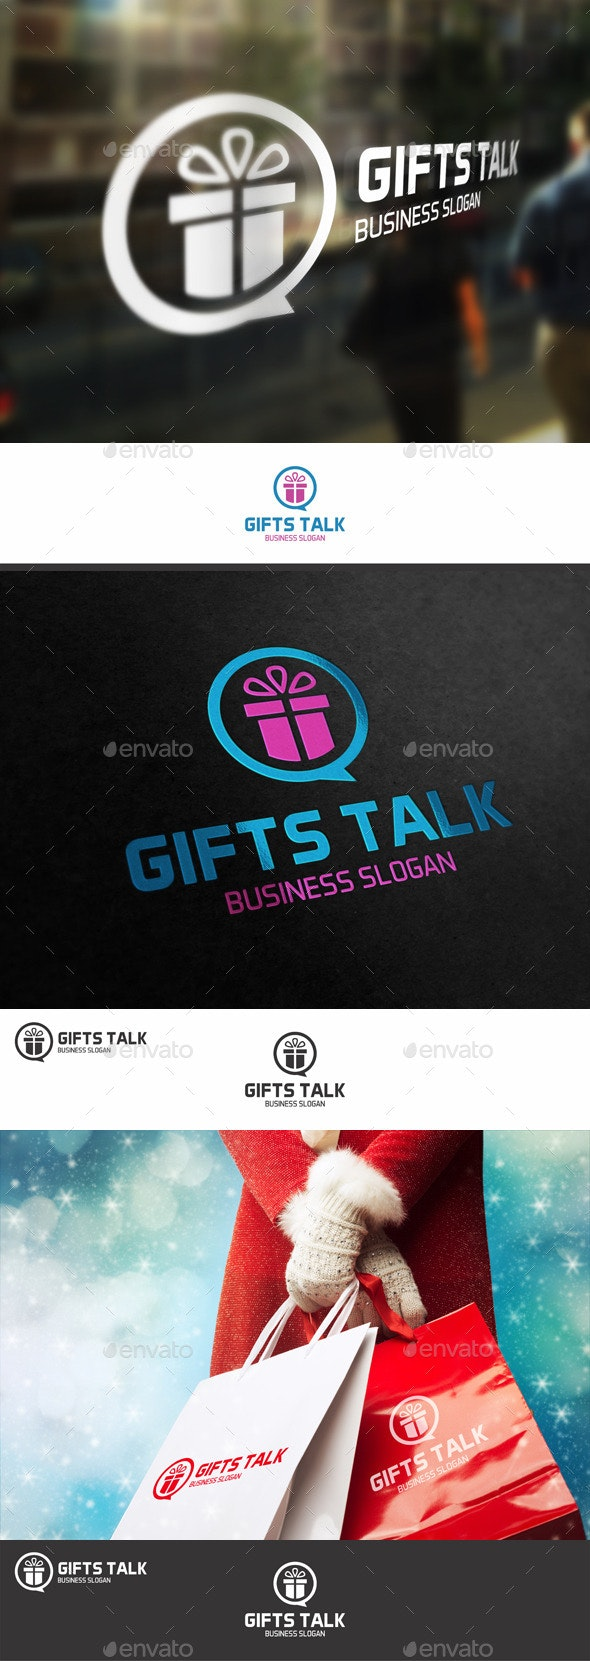 Talk About Gifts Logo - Objects Logo Templates